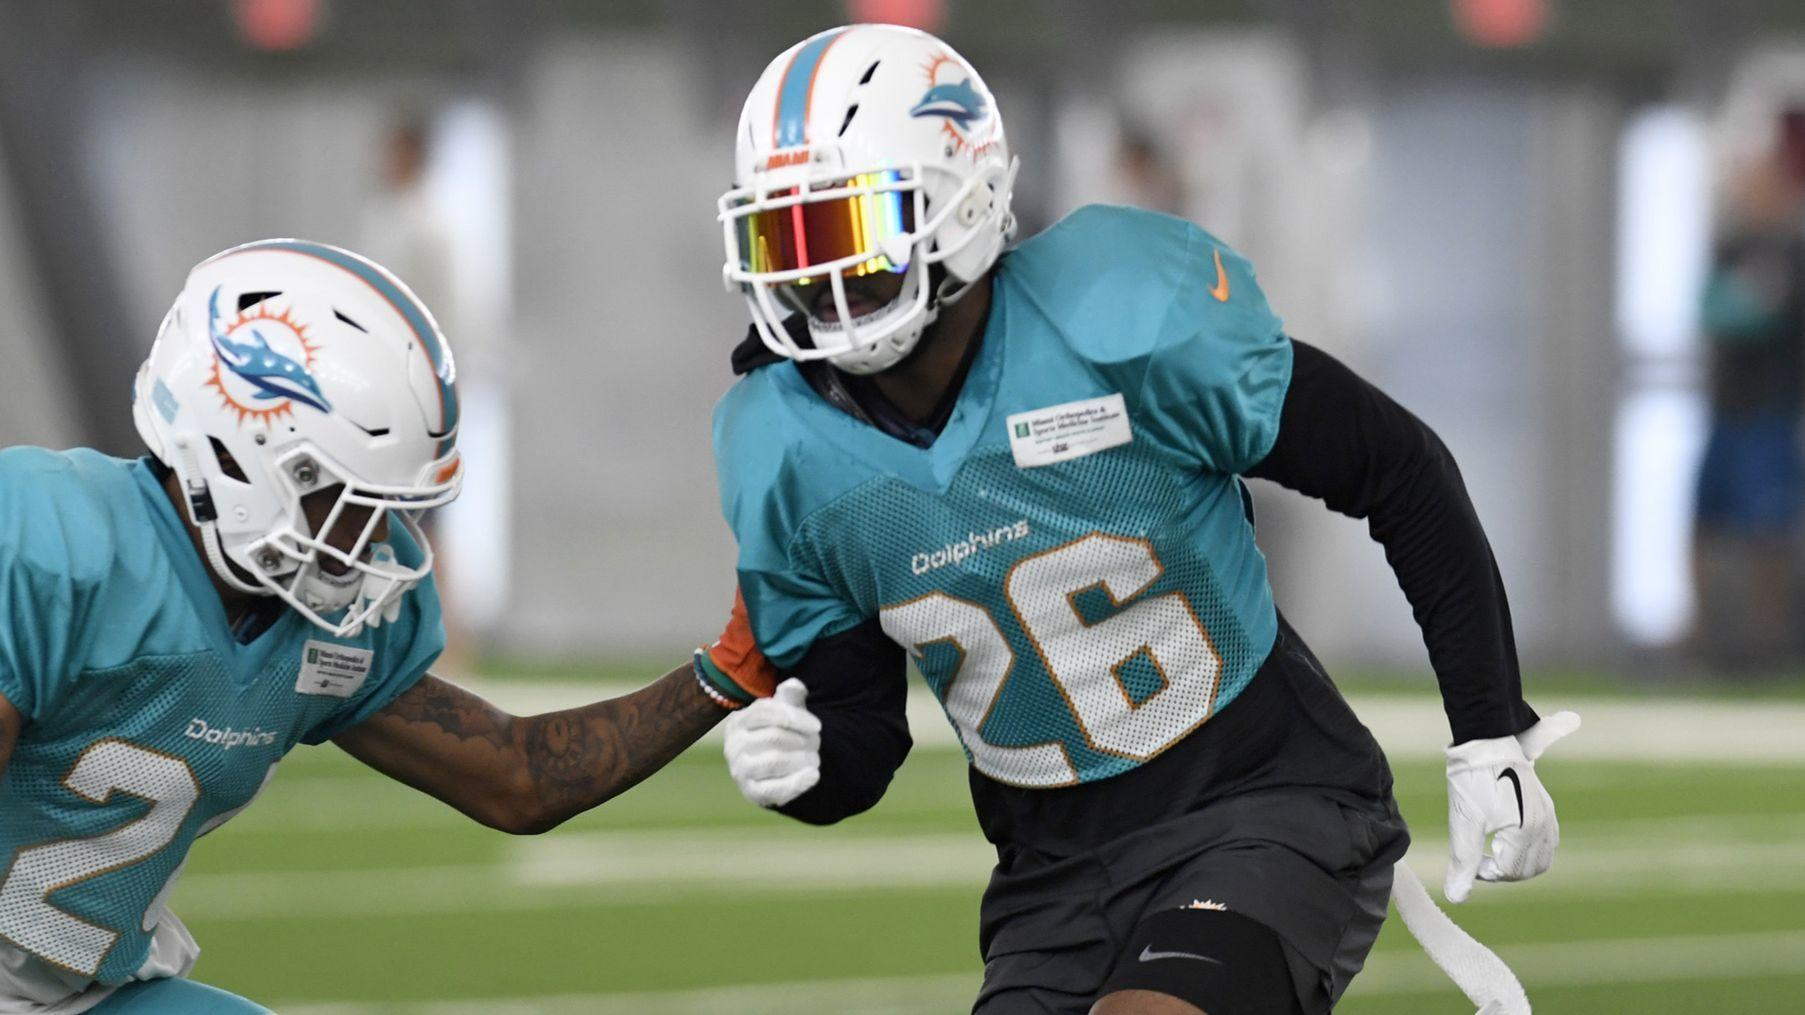 Fl-sp-dolphins-maurice-smith-20181221